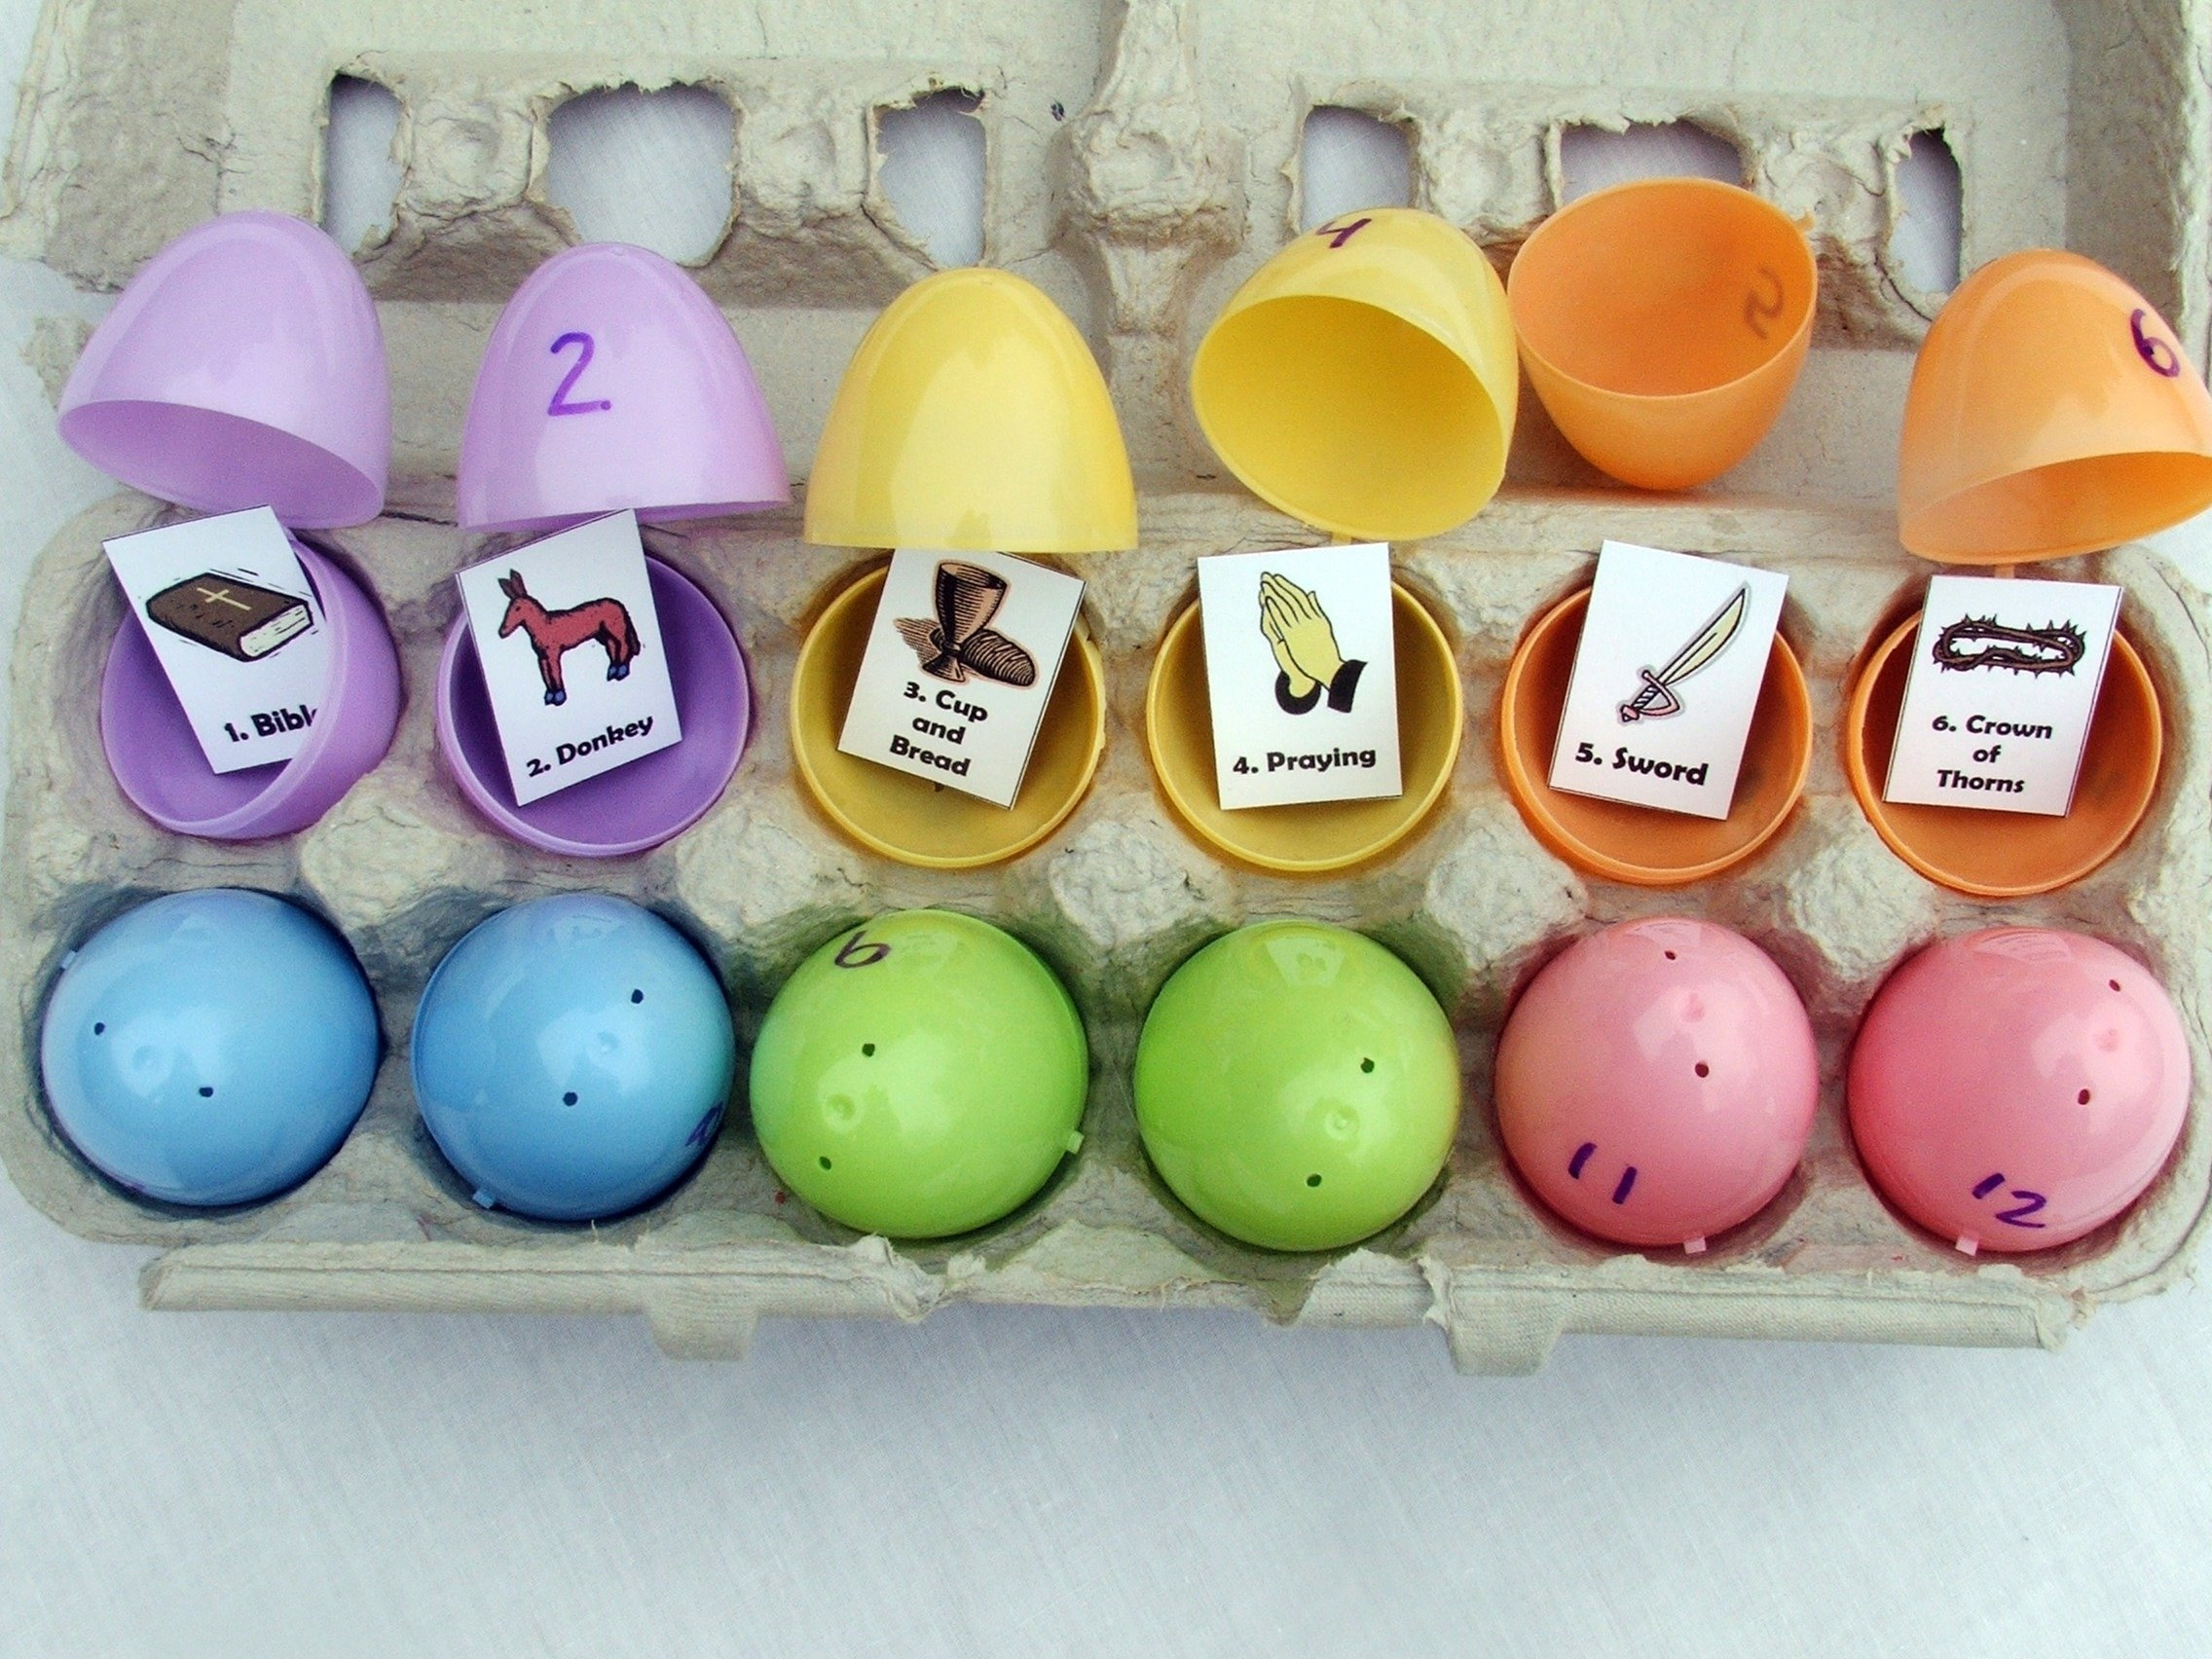 10 Elegant Easter Egg Ideas For Toddlers christ centered easter activities and crafts for kids